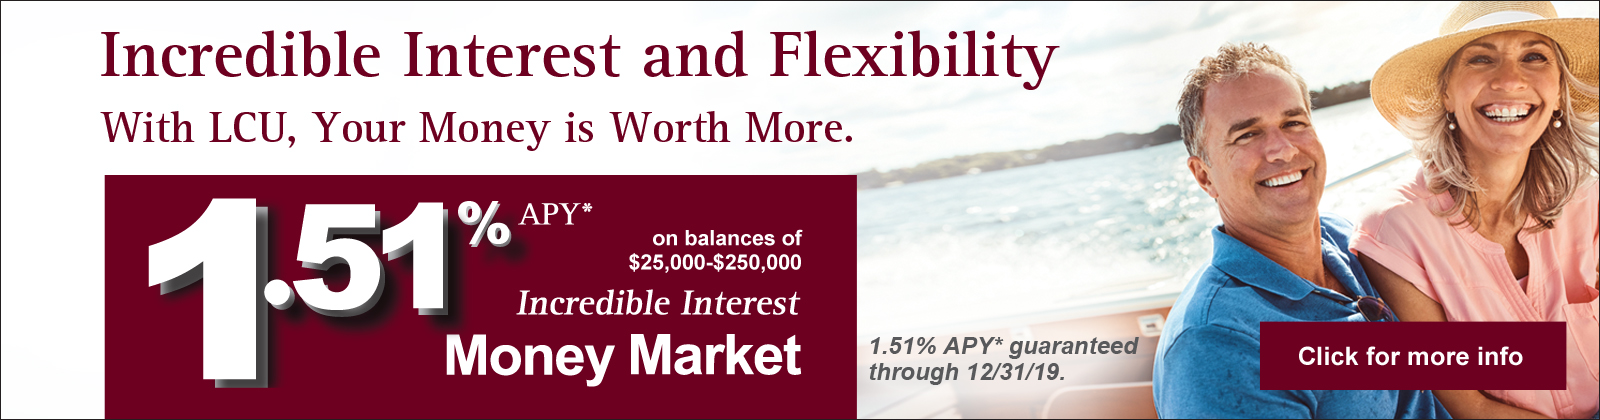 Incredible Interest and Flexibility